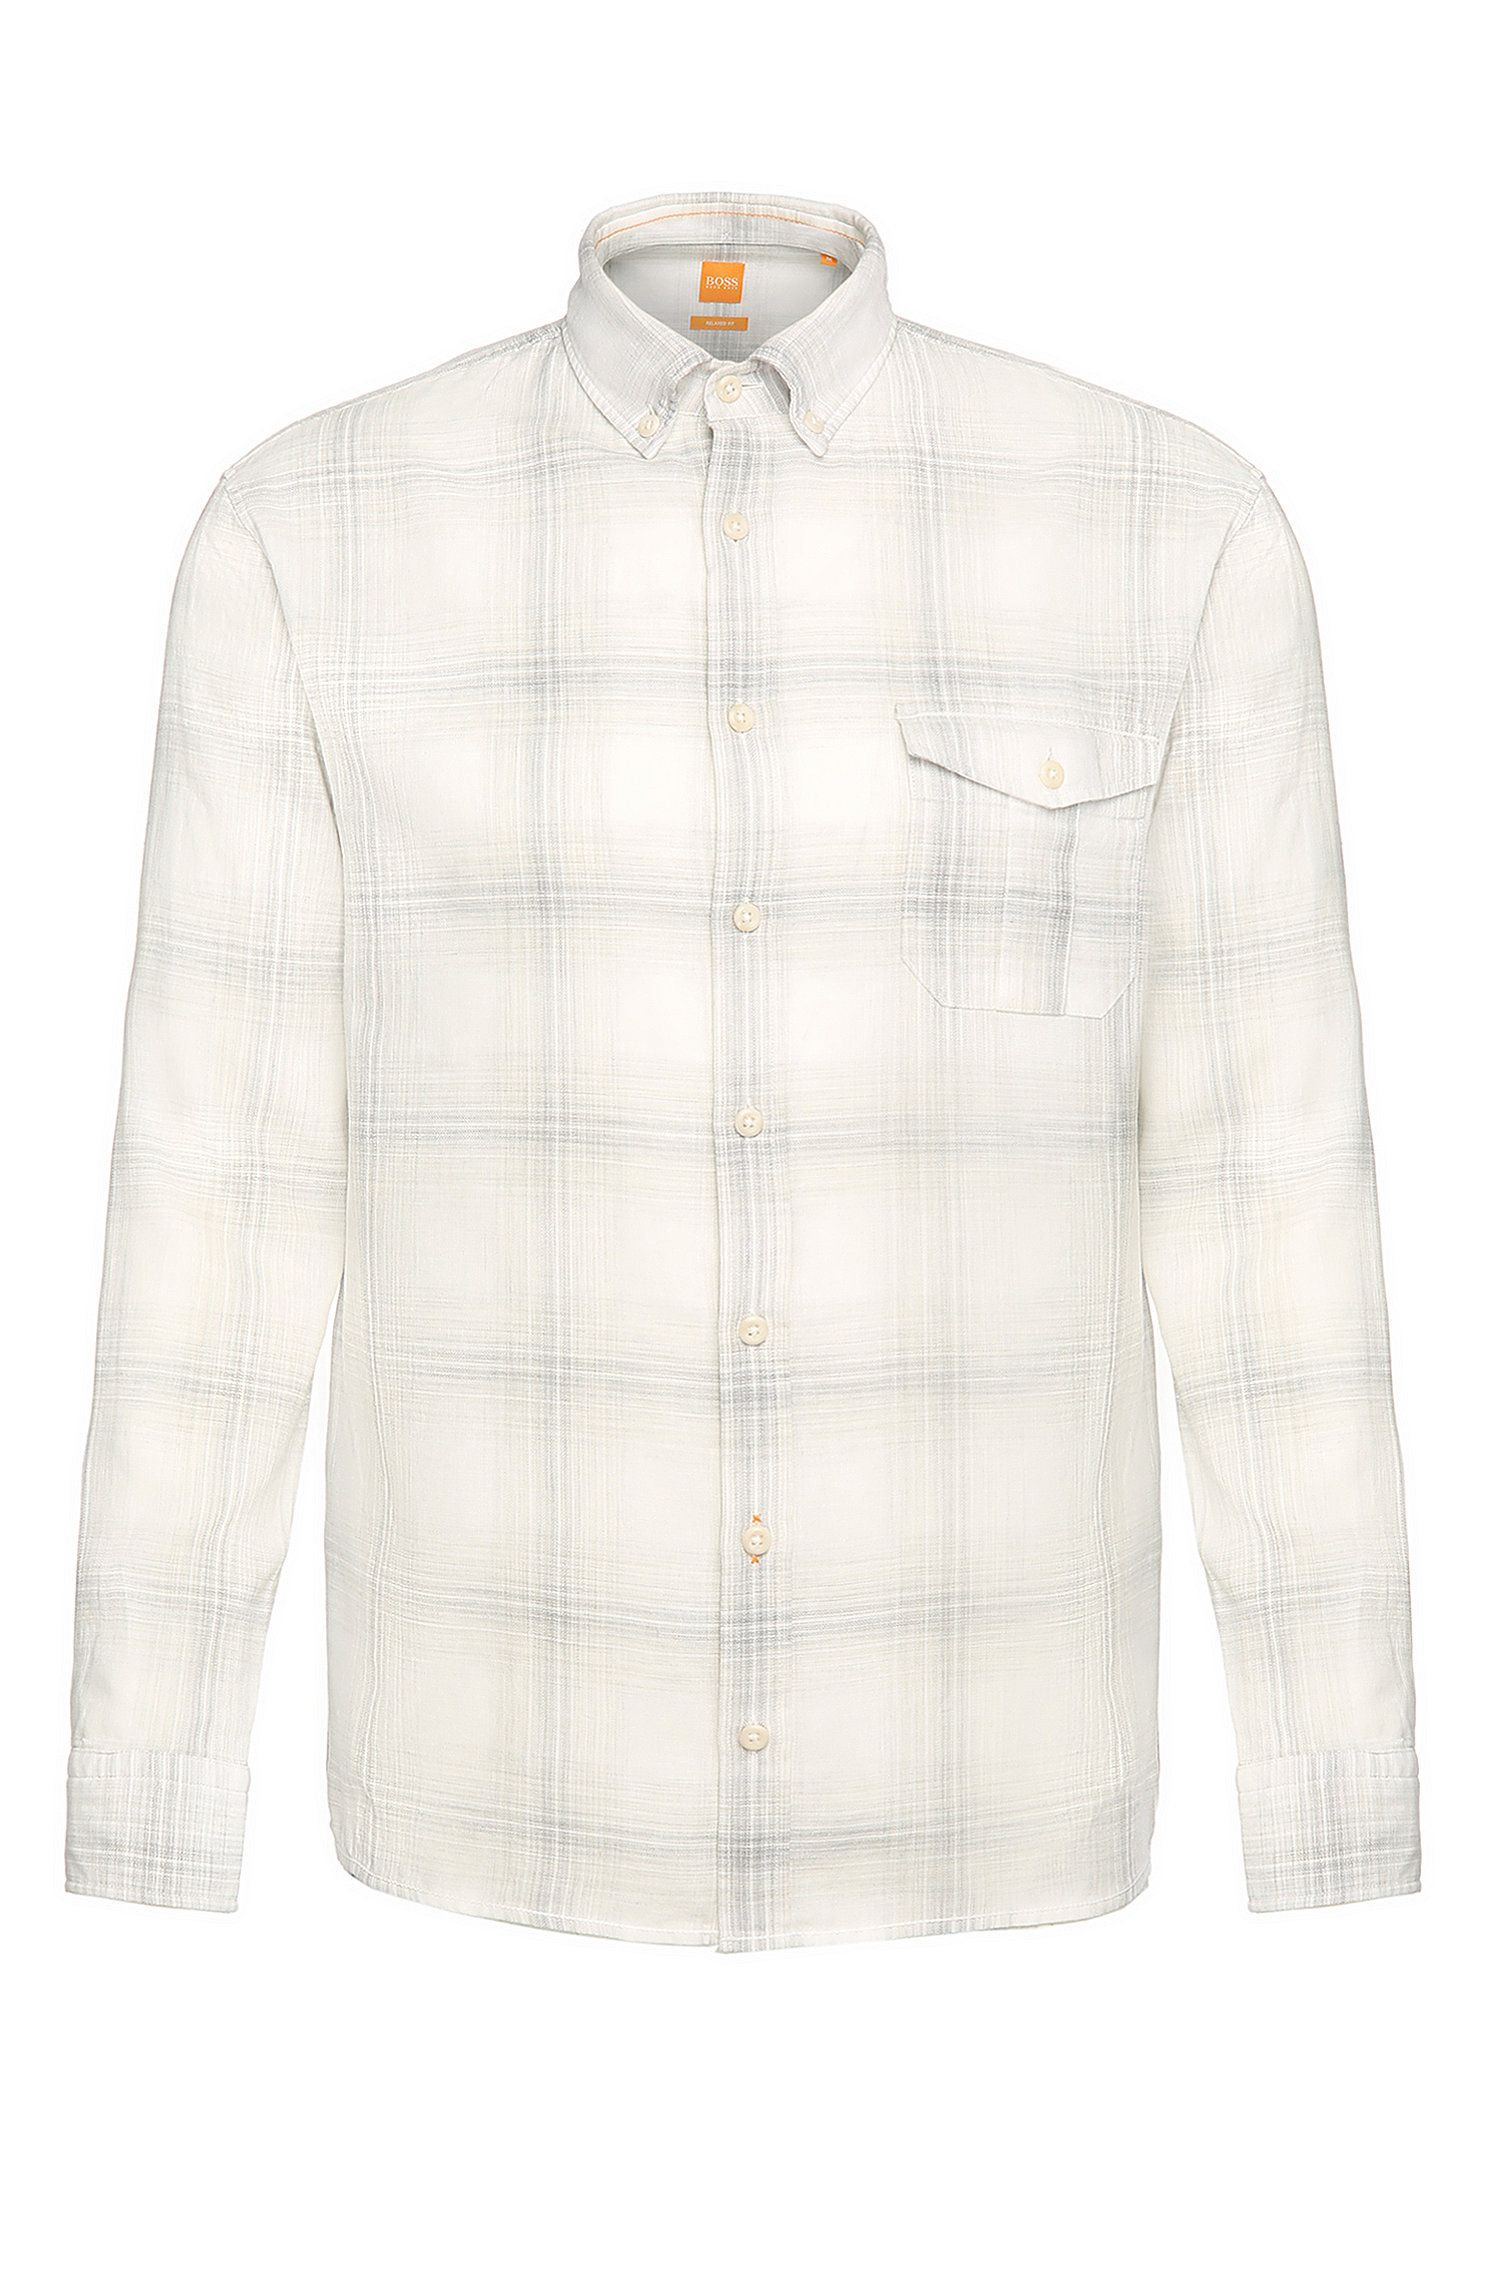 Cotton Linen Plaid Sport Shirt, Regular Fit | Elabor